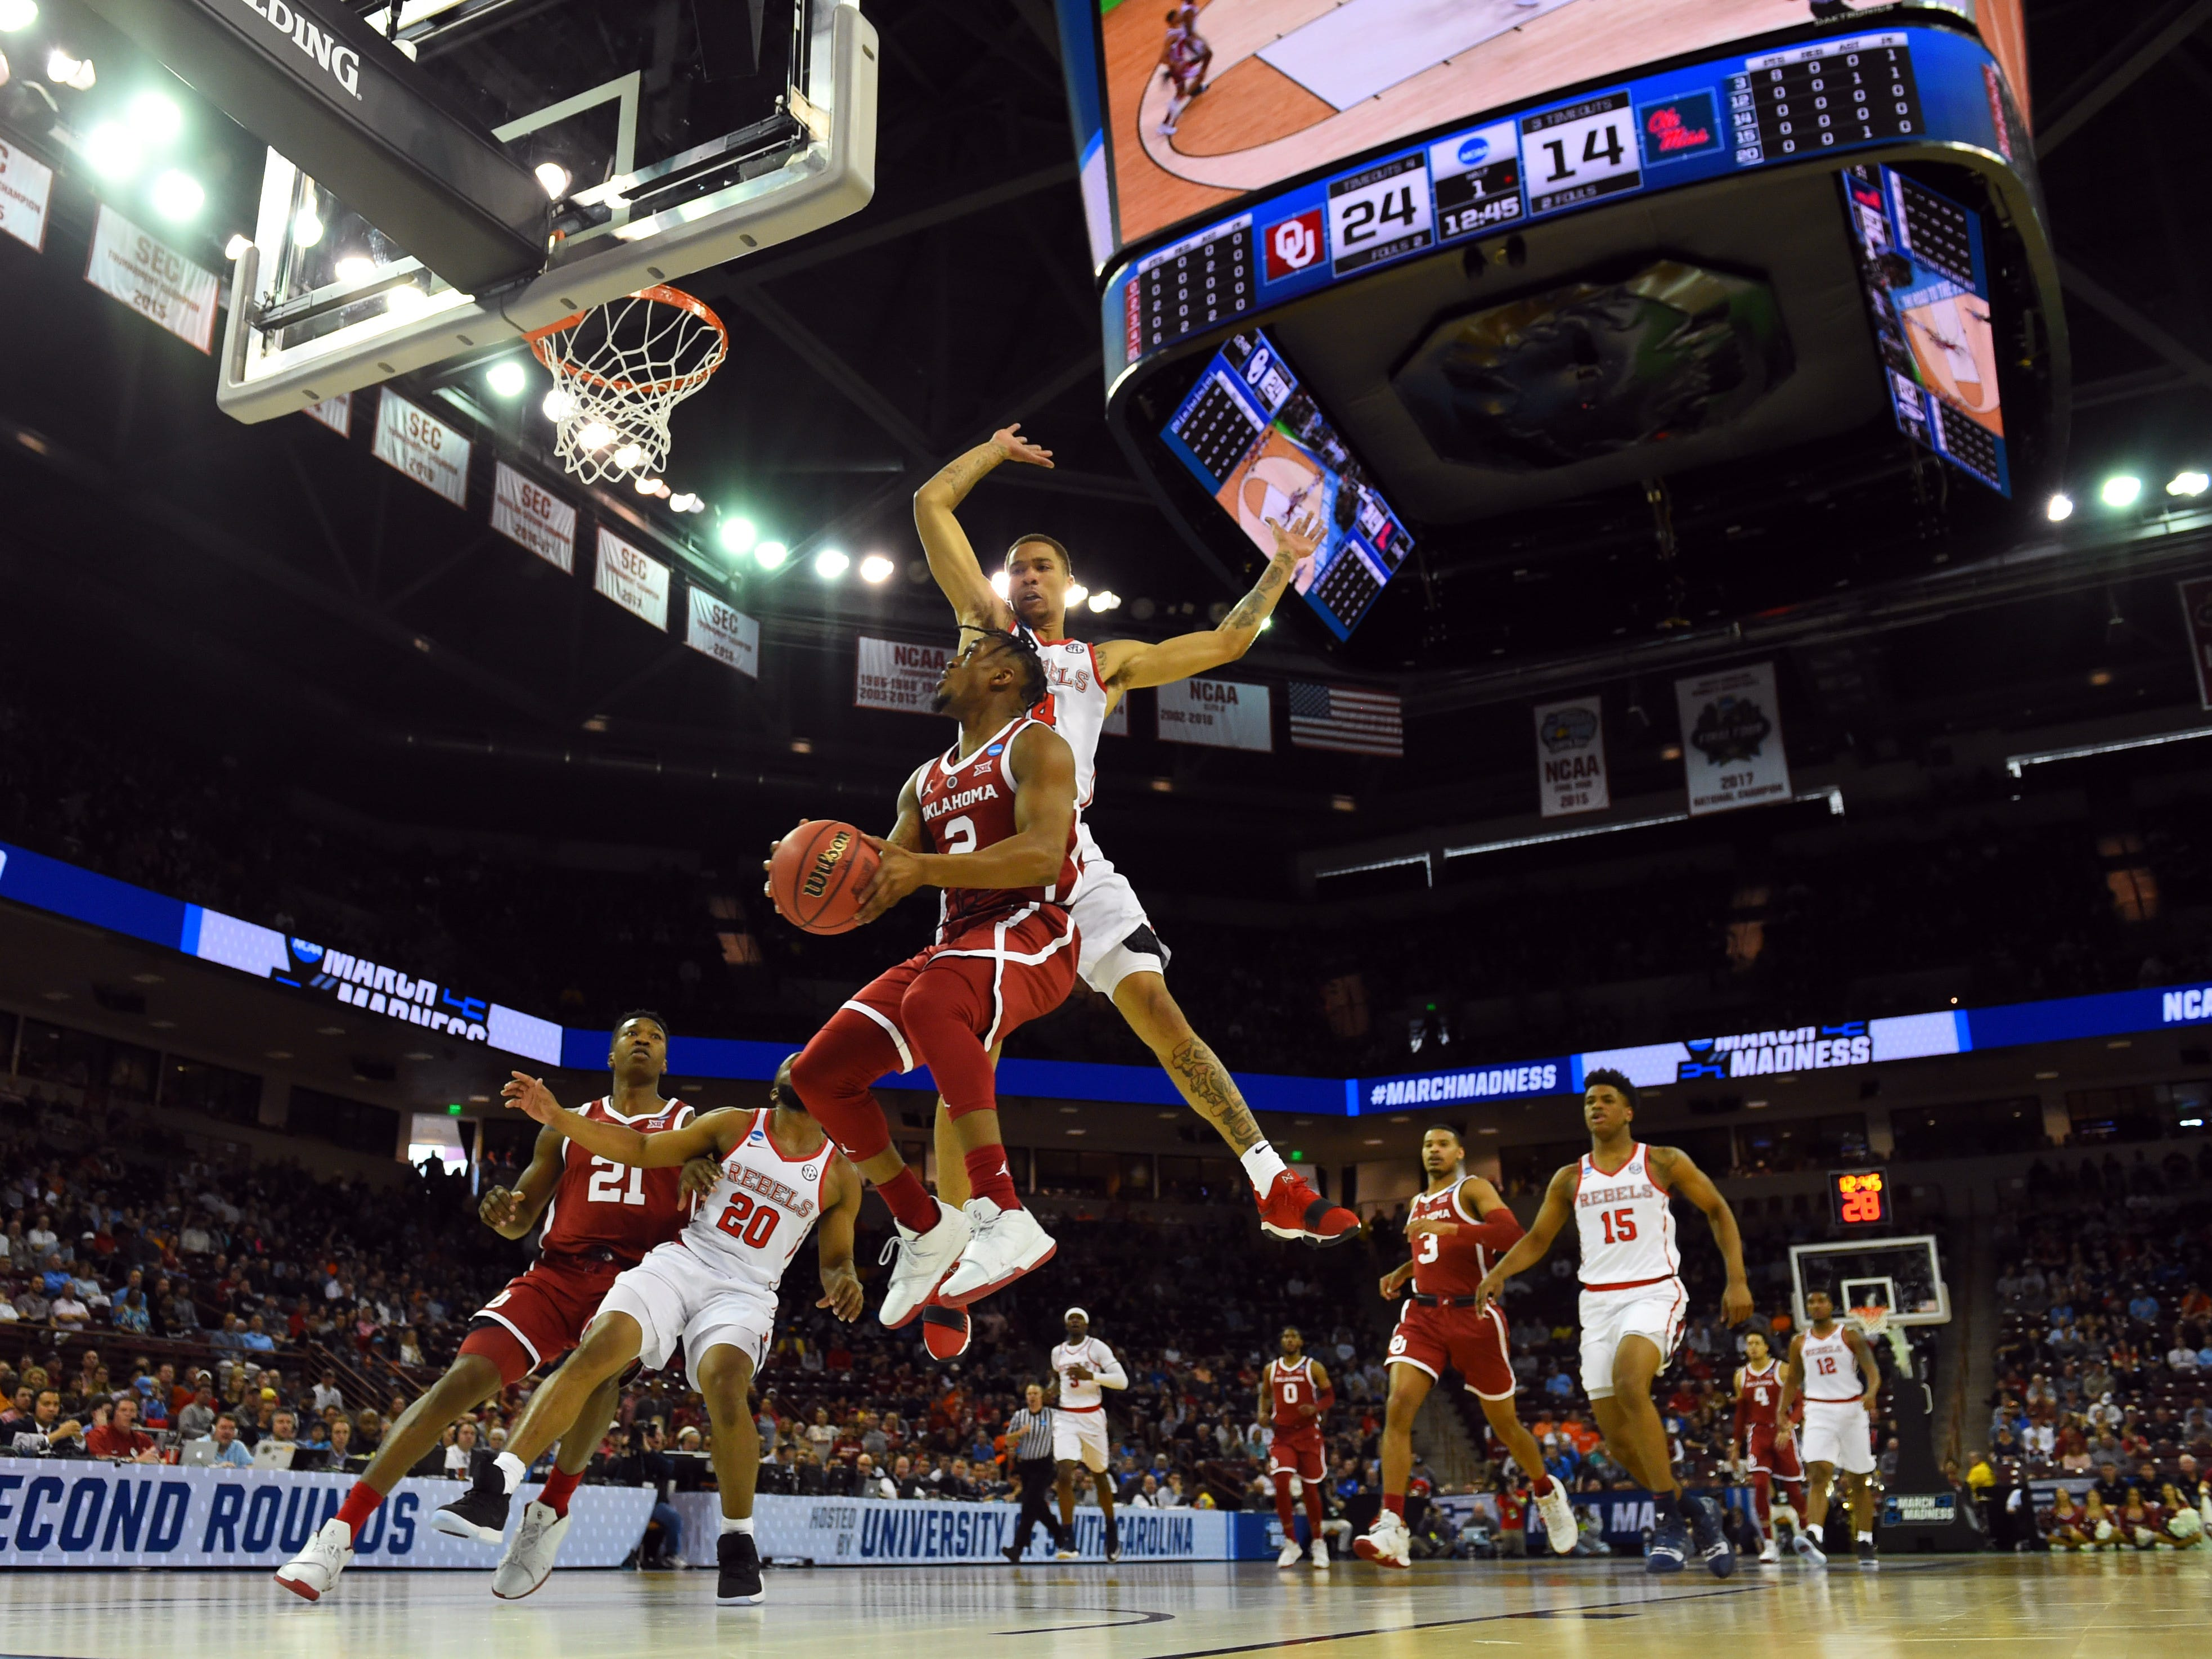 First round: Oklahoma guard Aaron Calixte goes up for a layup during the Sooners' rout of Ole Miss.